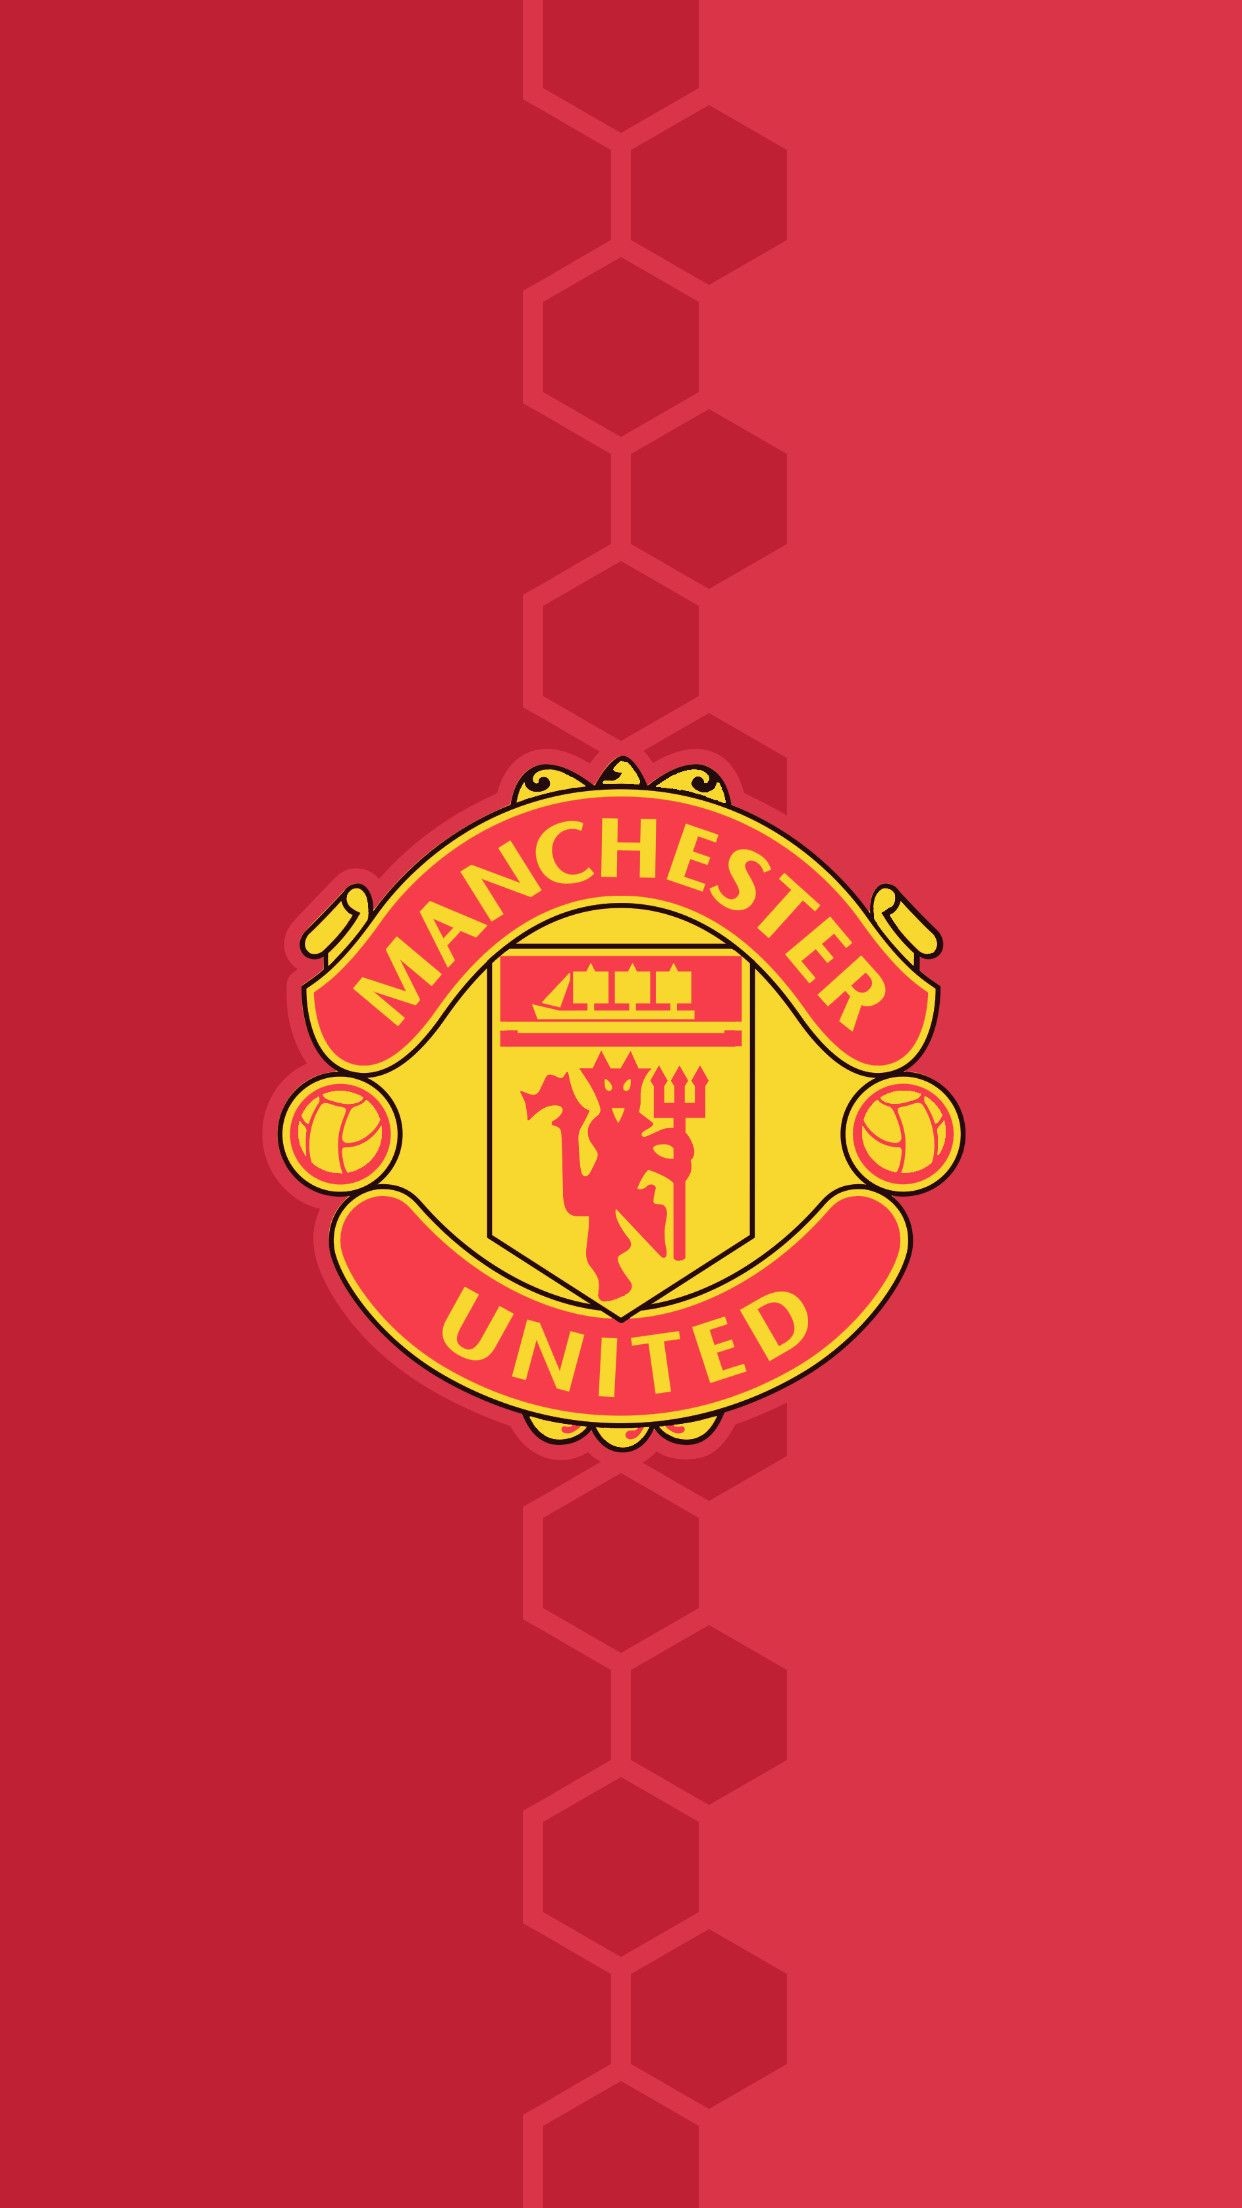 Wallpaper Logo Manchester United 2018 ·①